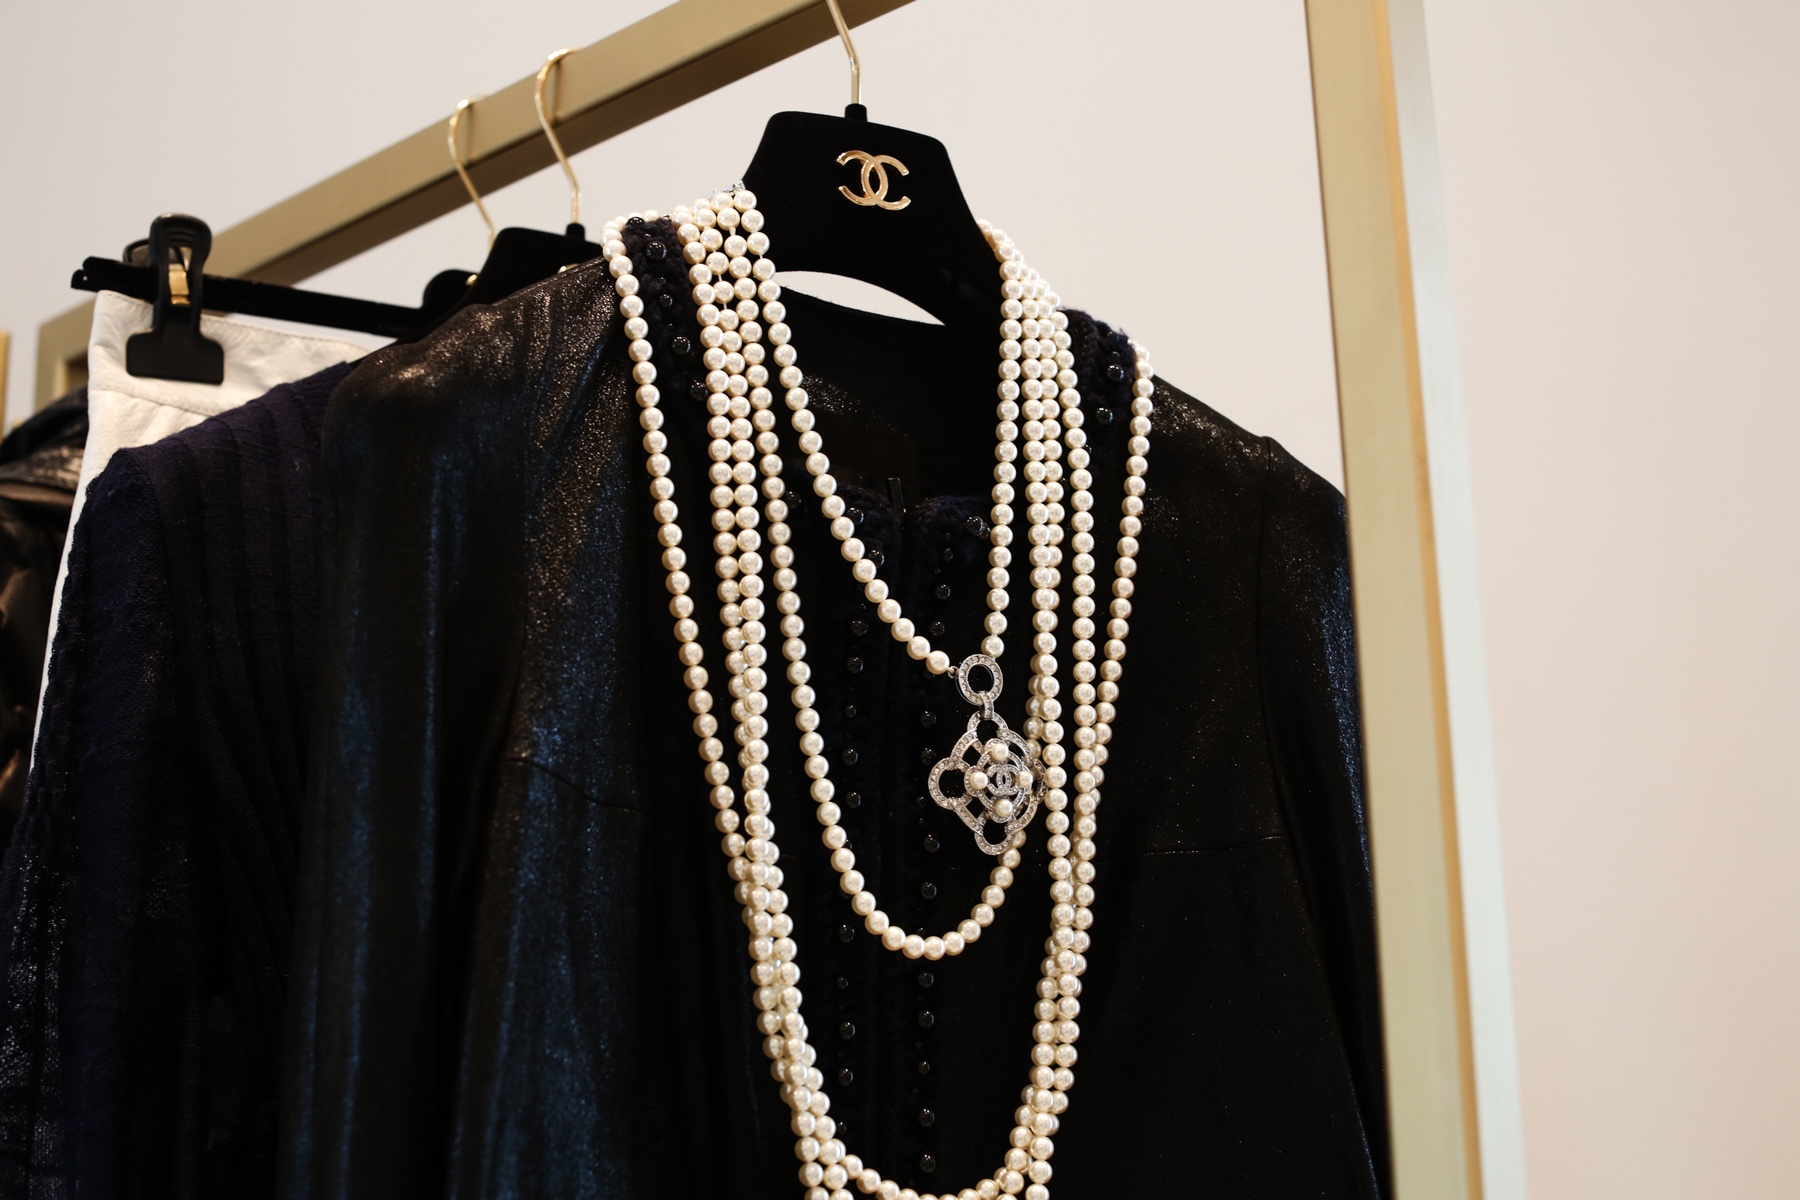 Chanel-Pressday-hw16-9